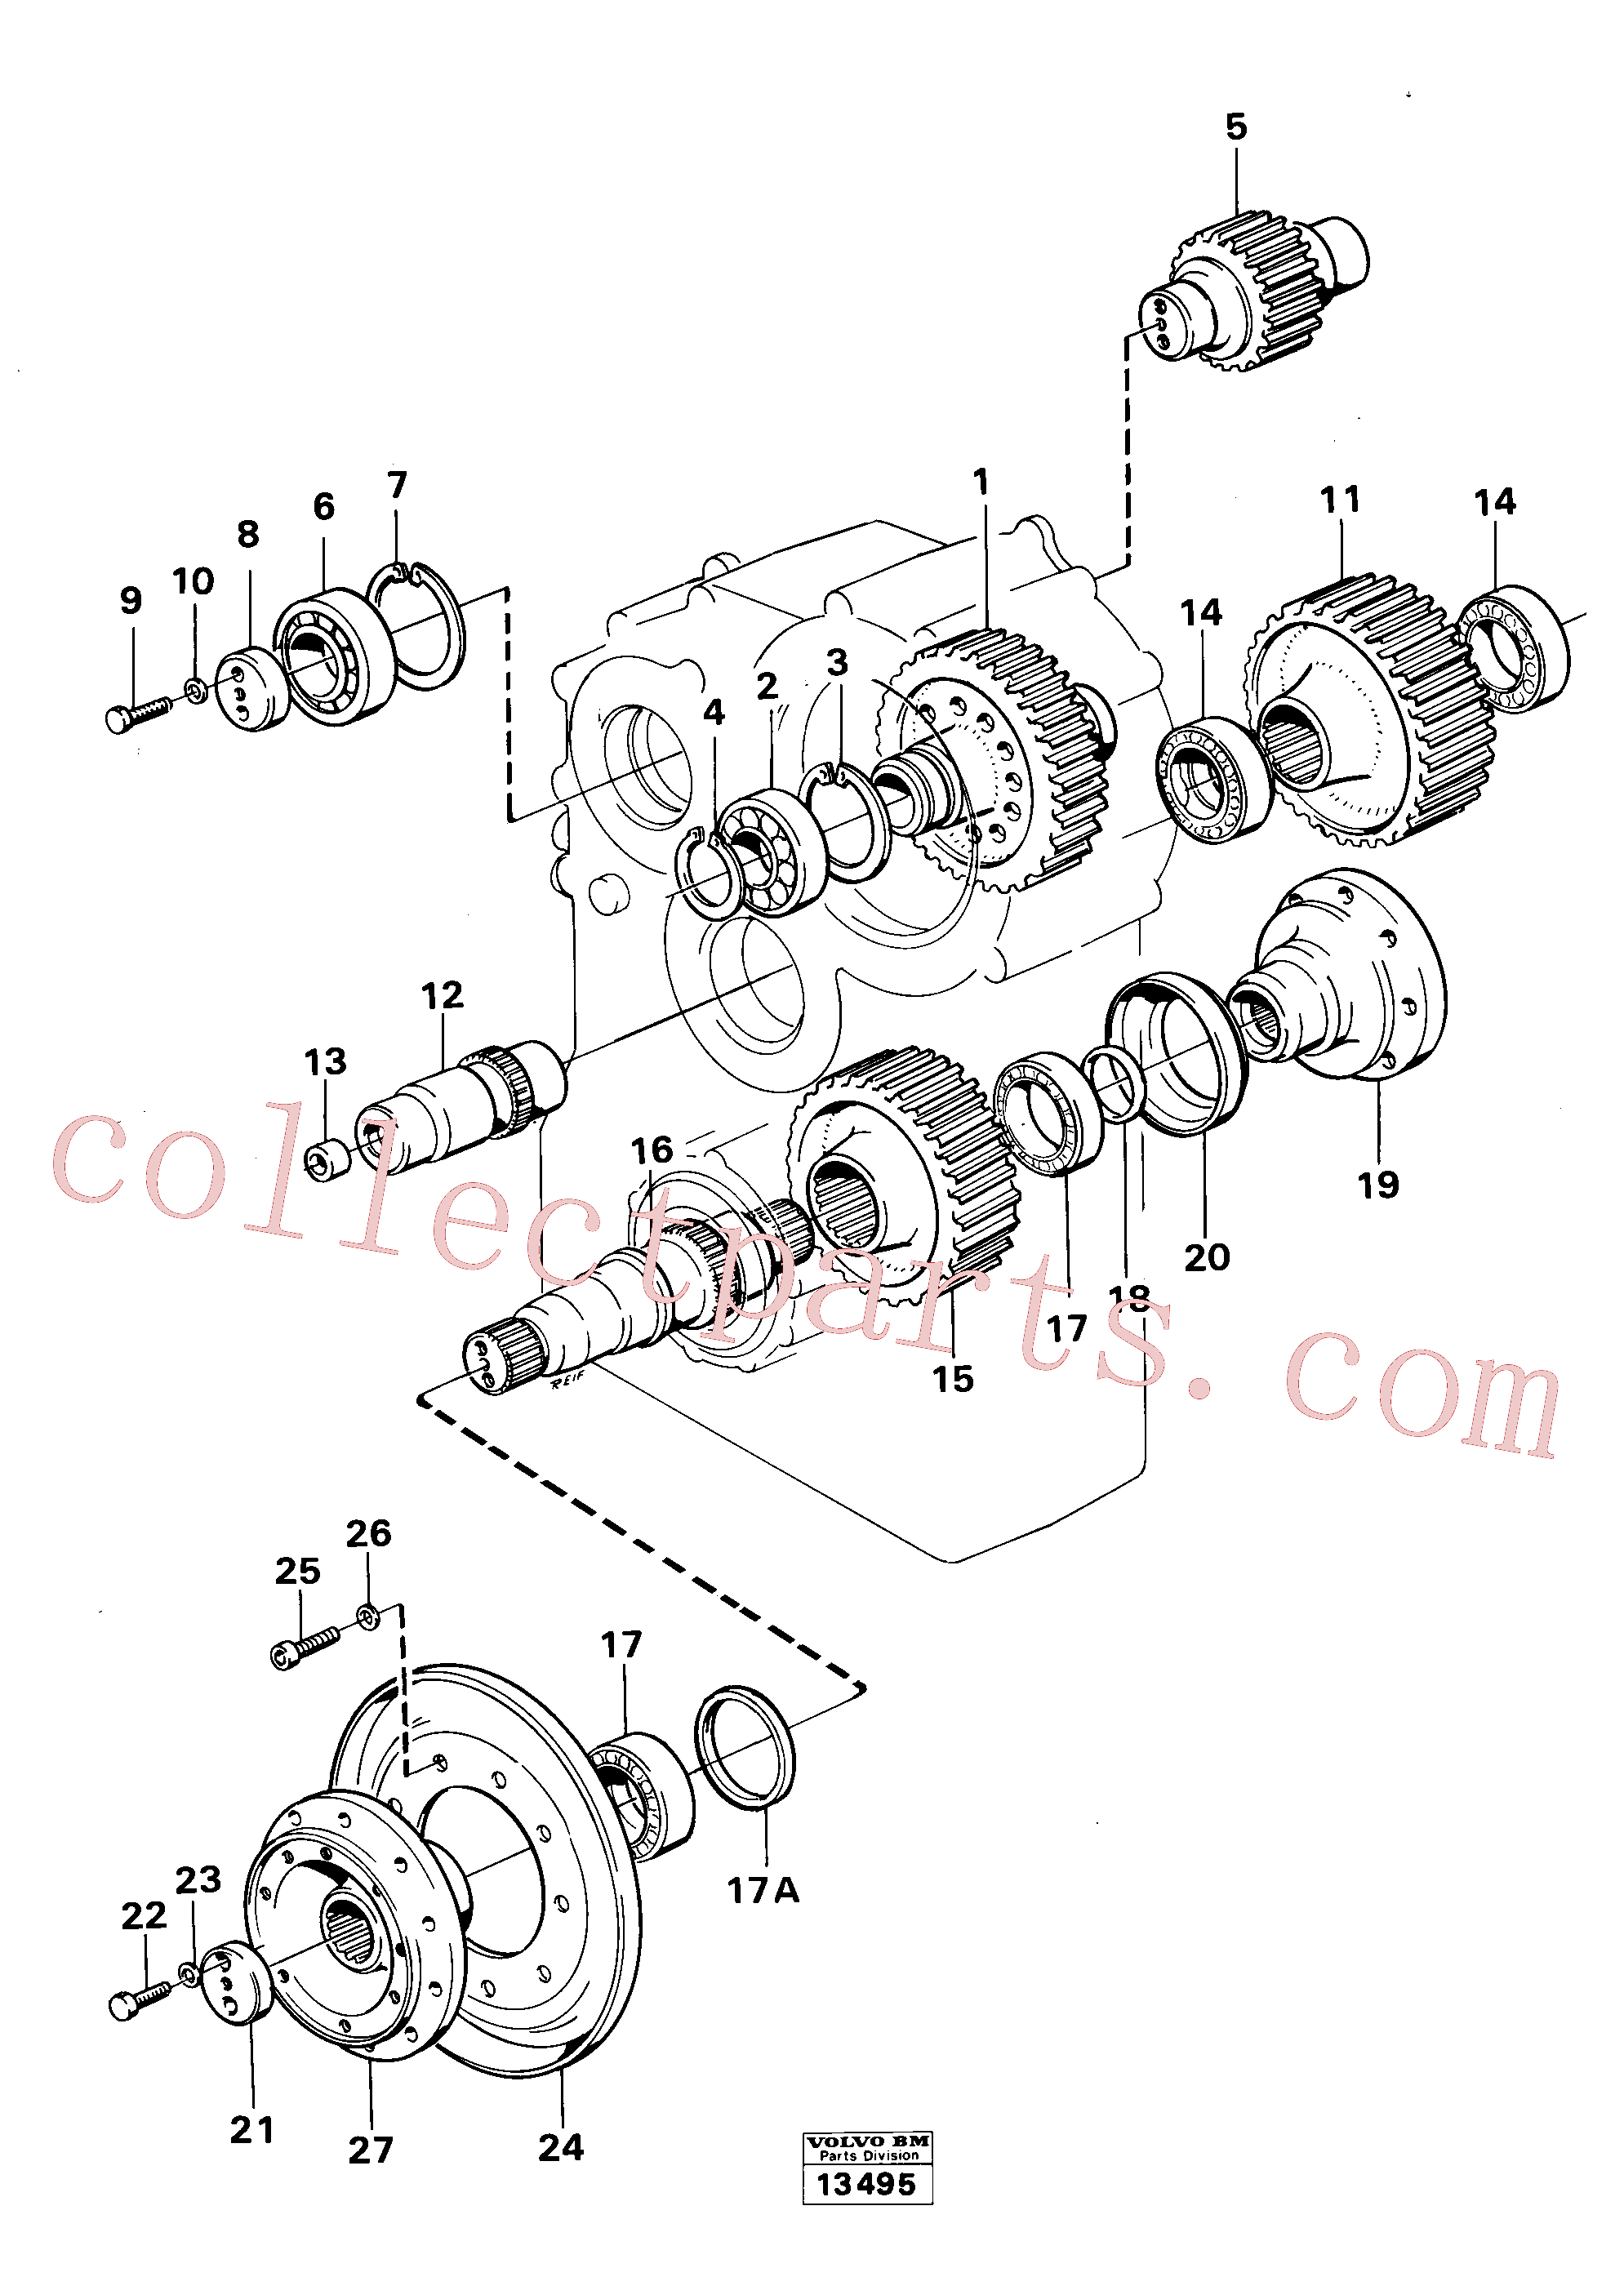 VOE914548 for Volvo Dropbox gears and shafts(13495 assembly)